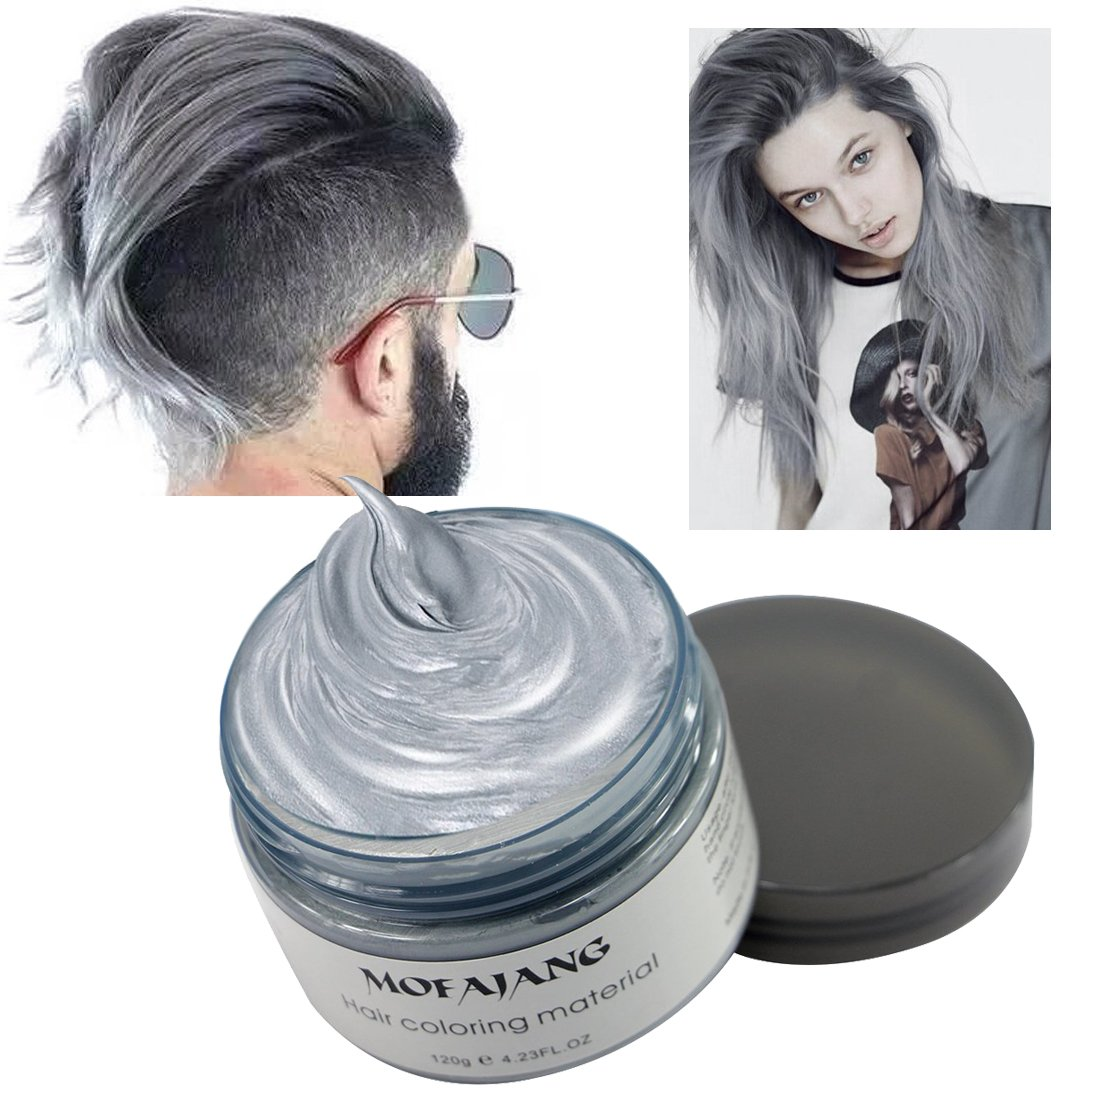 Hair Coloring Wax, Ash Grey Disposable MOFAJANG Instant Matte Hairstyle Mud  Cream Hair Pomades for Kids Men Women to Cosplay Nightclub Masquerade ...